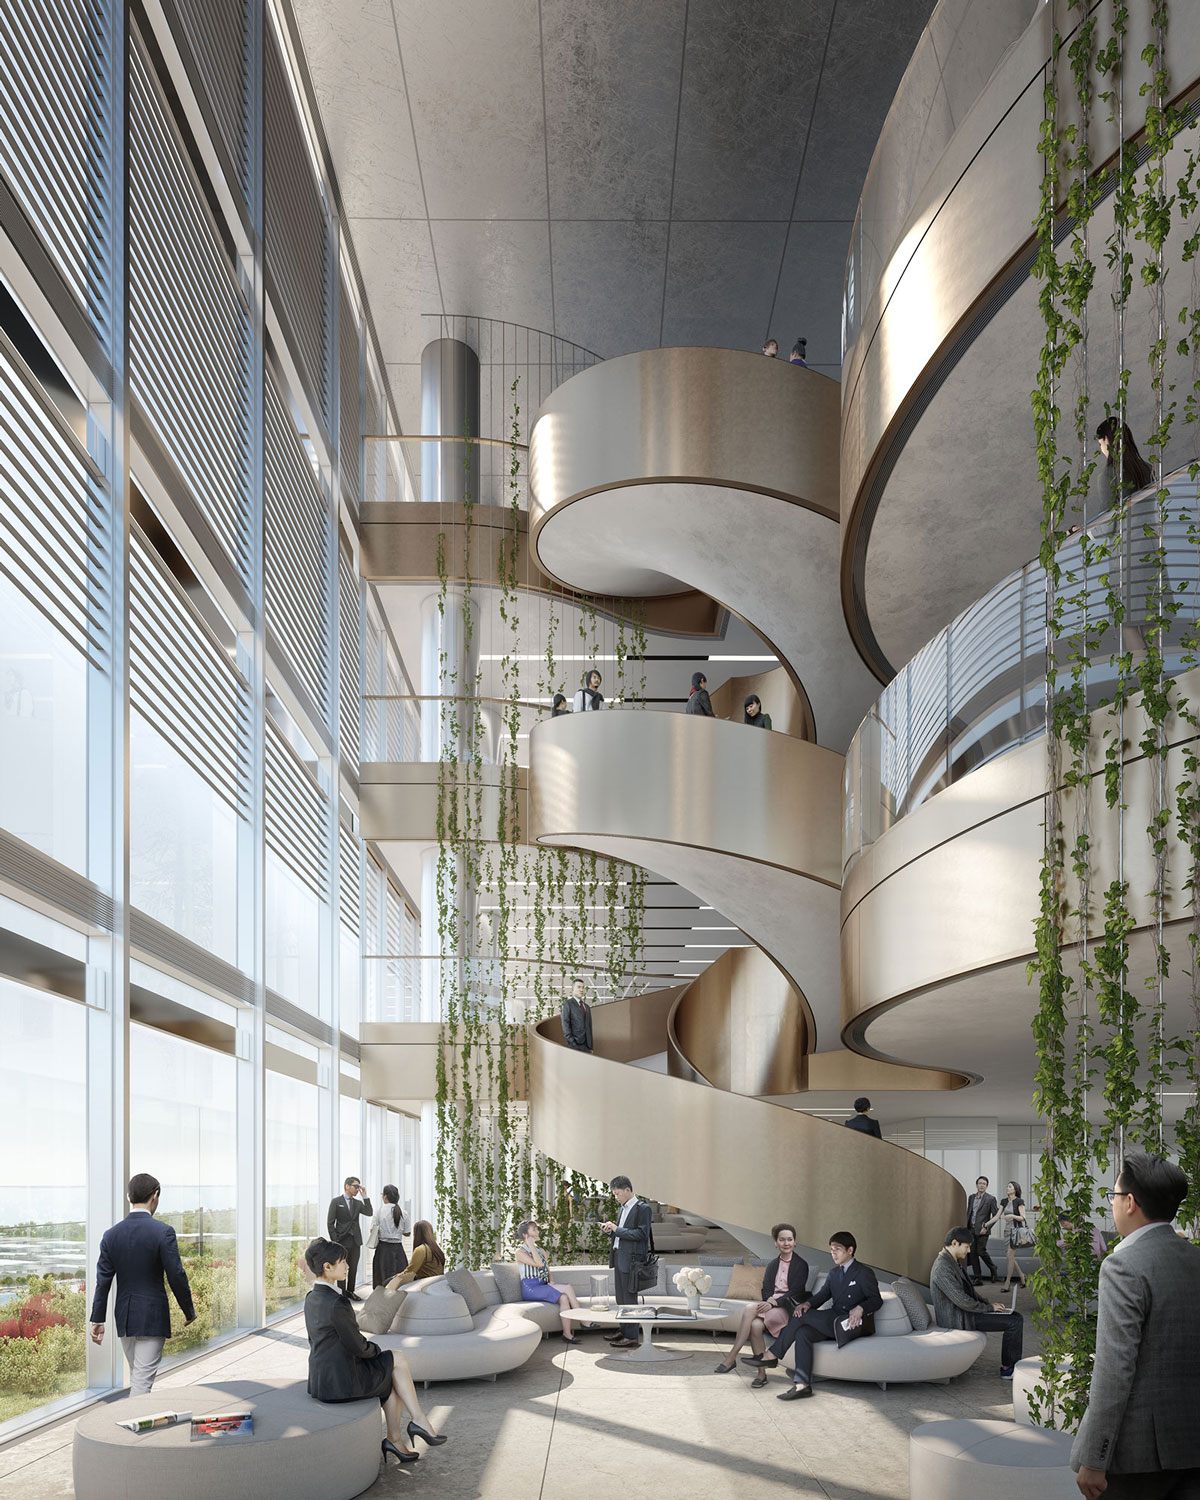 Interior staircase View Render Jaeger Kahlen Partners Architects Ltd.